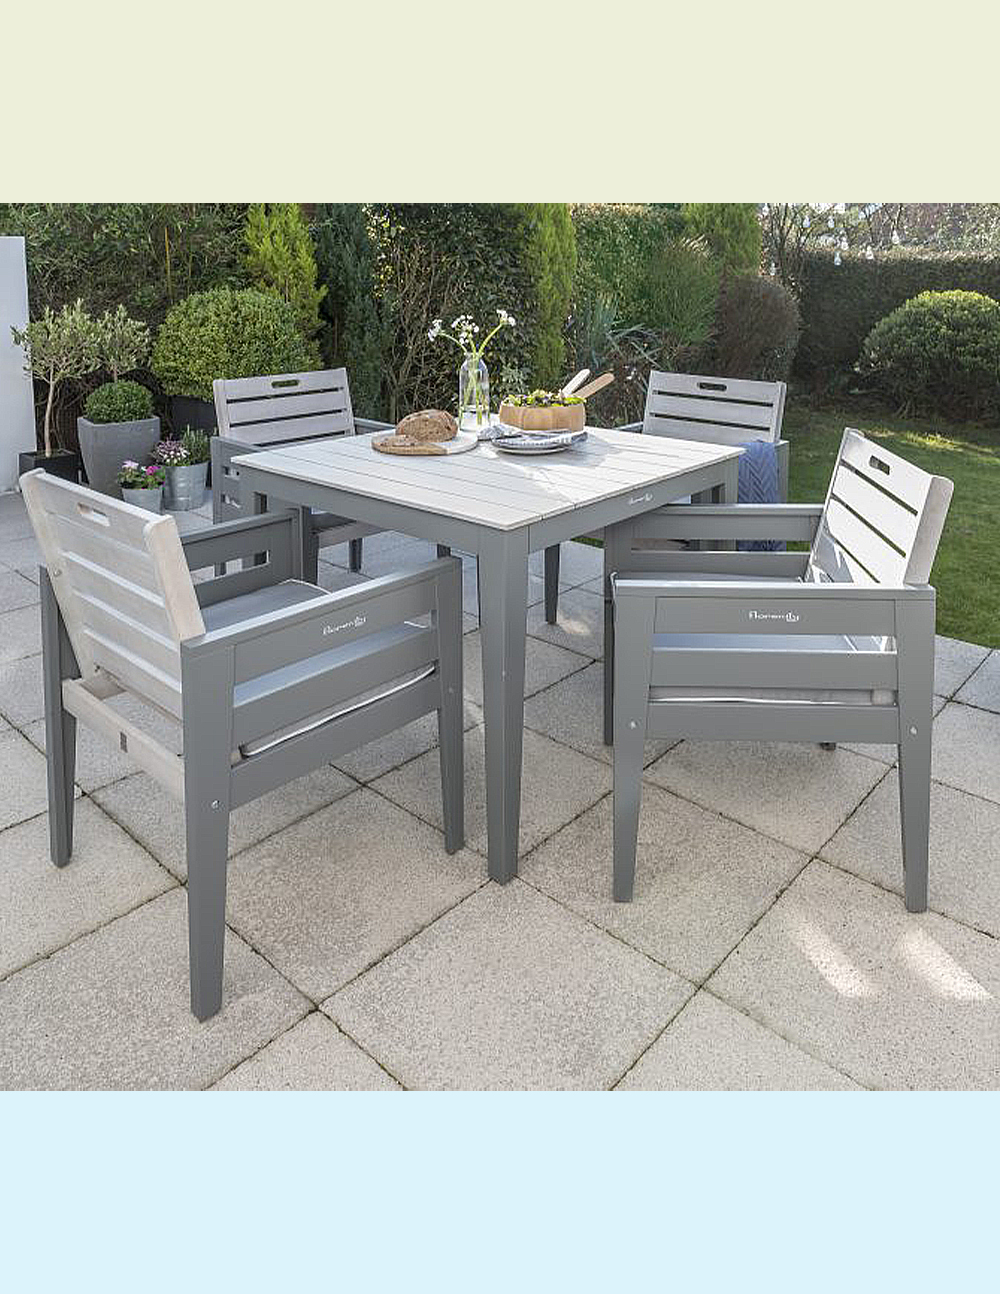 Awe Inspiring English Garden Range Dining Set Greywash Grey Evergreenethics Interior Chair Design Evergreenethicsorg